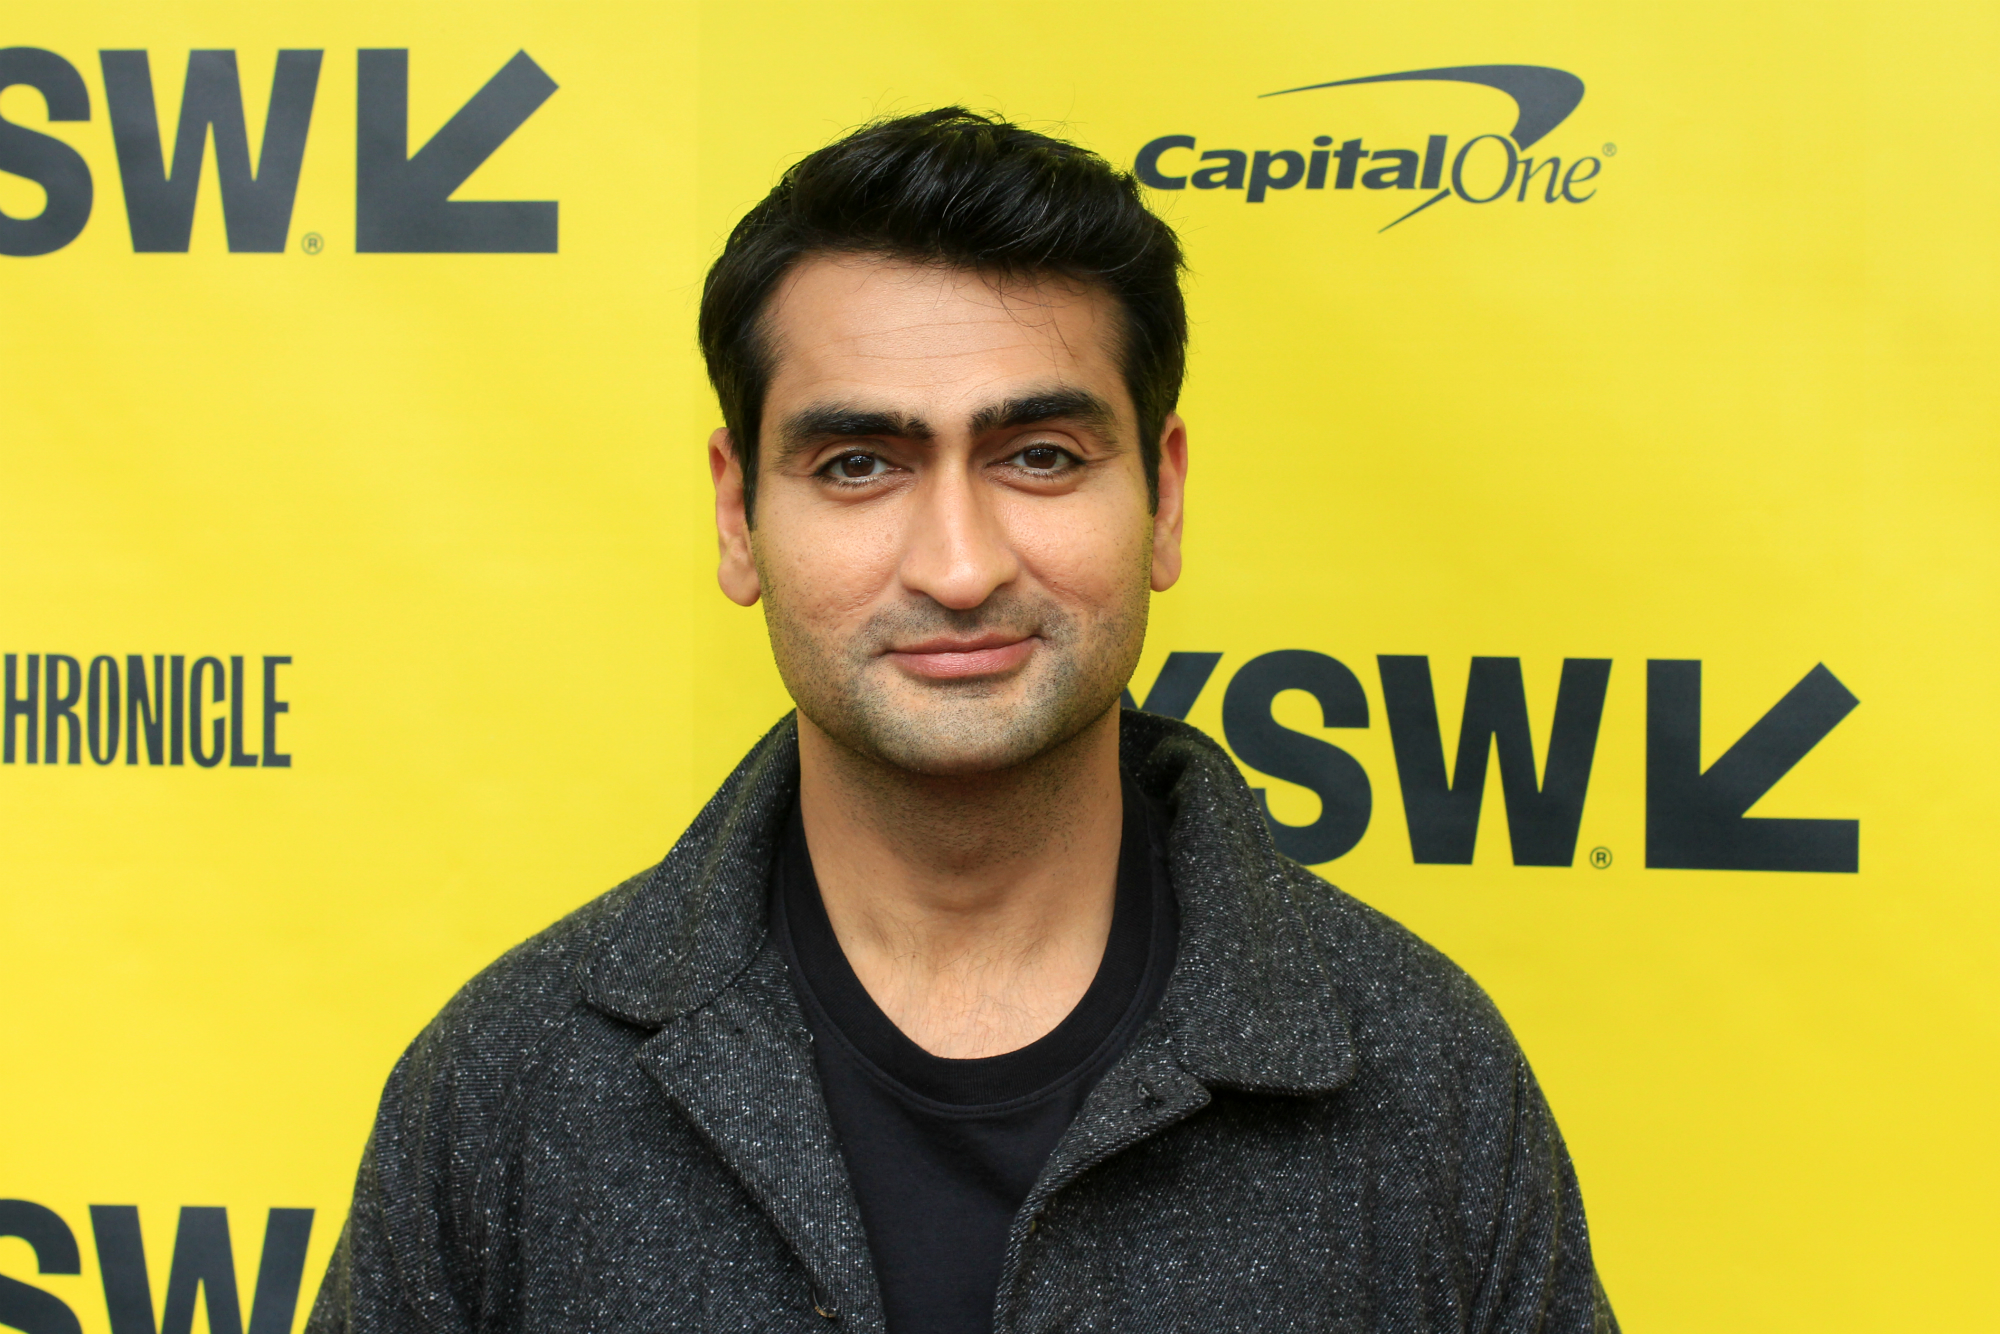 Kumail Nanjiani // The Big Sick // Photo by Heather Kaplan